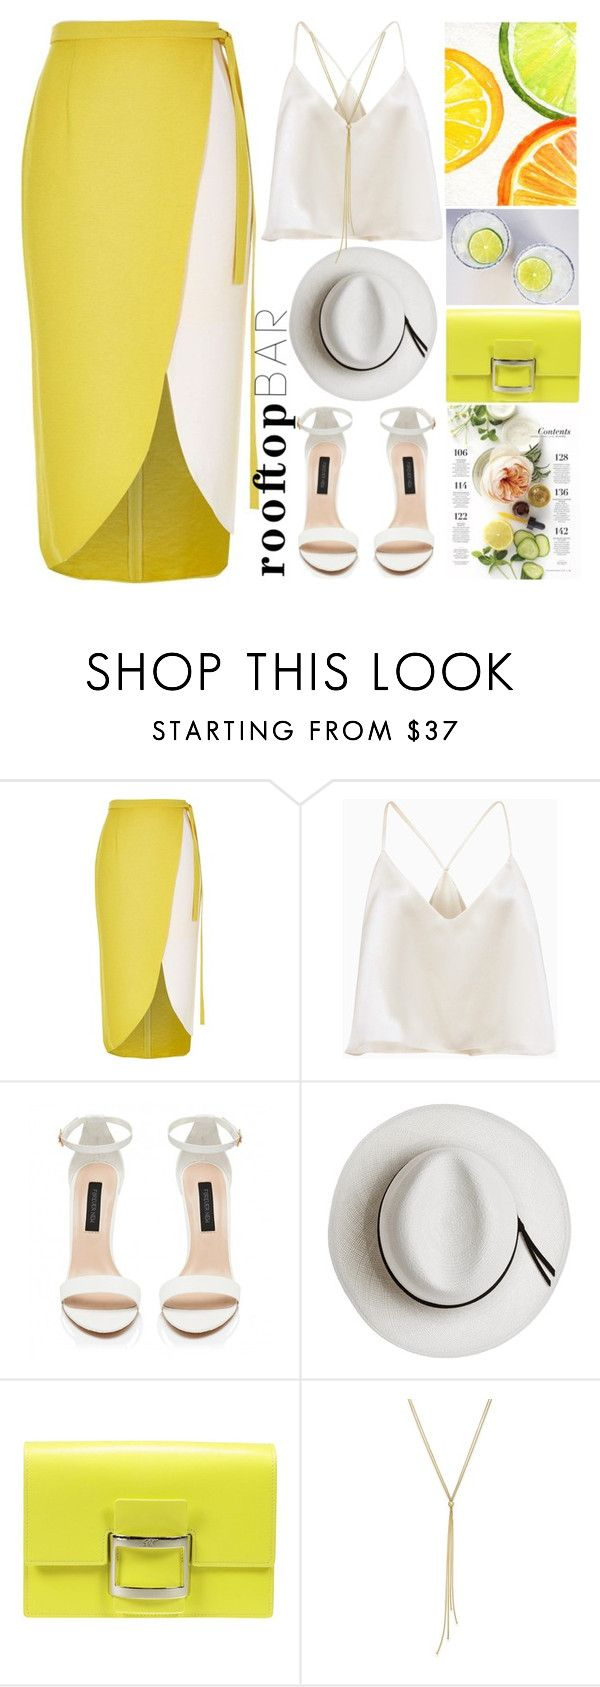 """""""Summer Date:Rooftop Bar"""" by grozdana-v ❤ liked on Polyvore featuring River Island, Forever New, Calypso Private Label, Roger Vivier, summerdate and rooftopbar"""